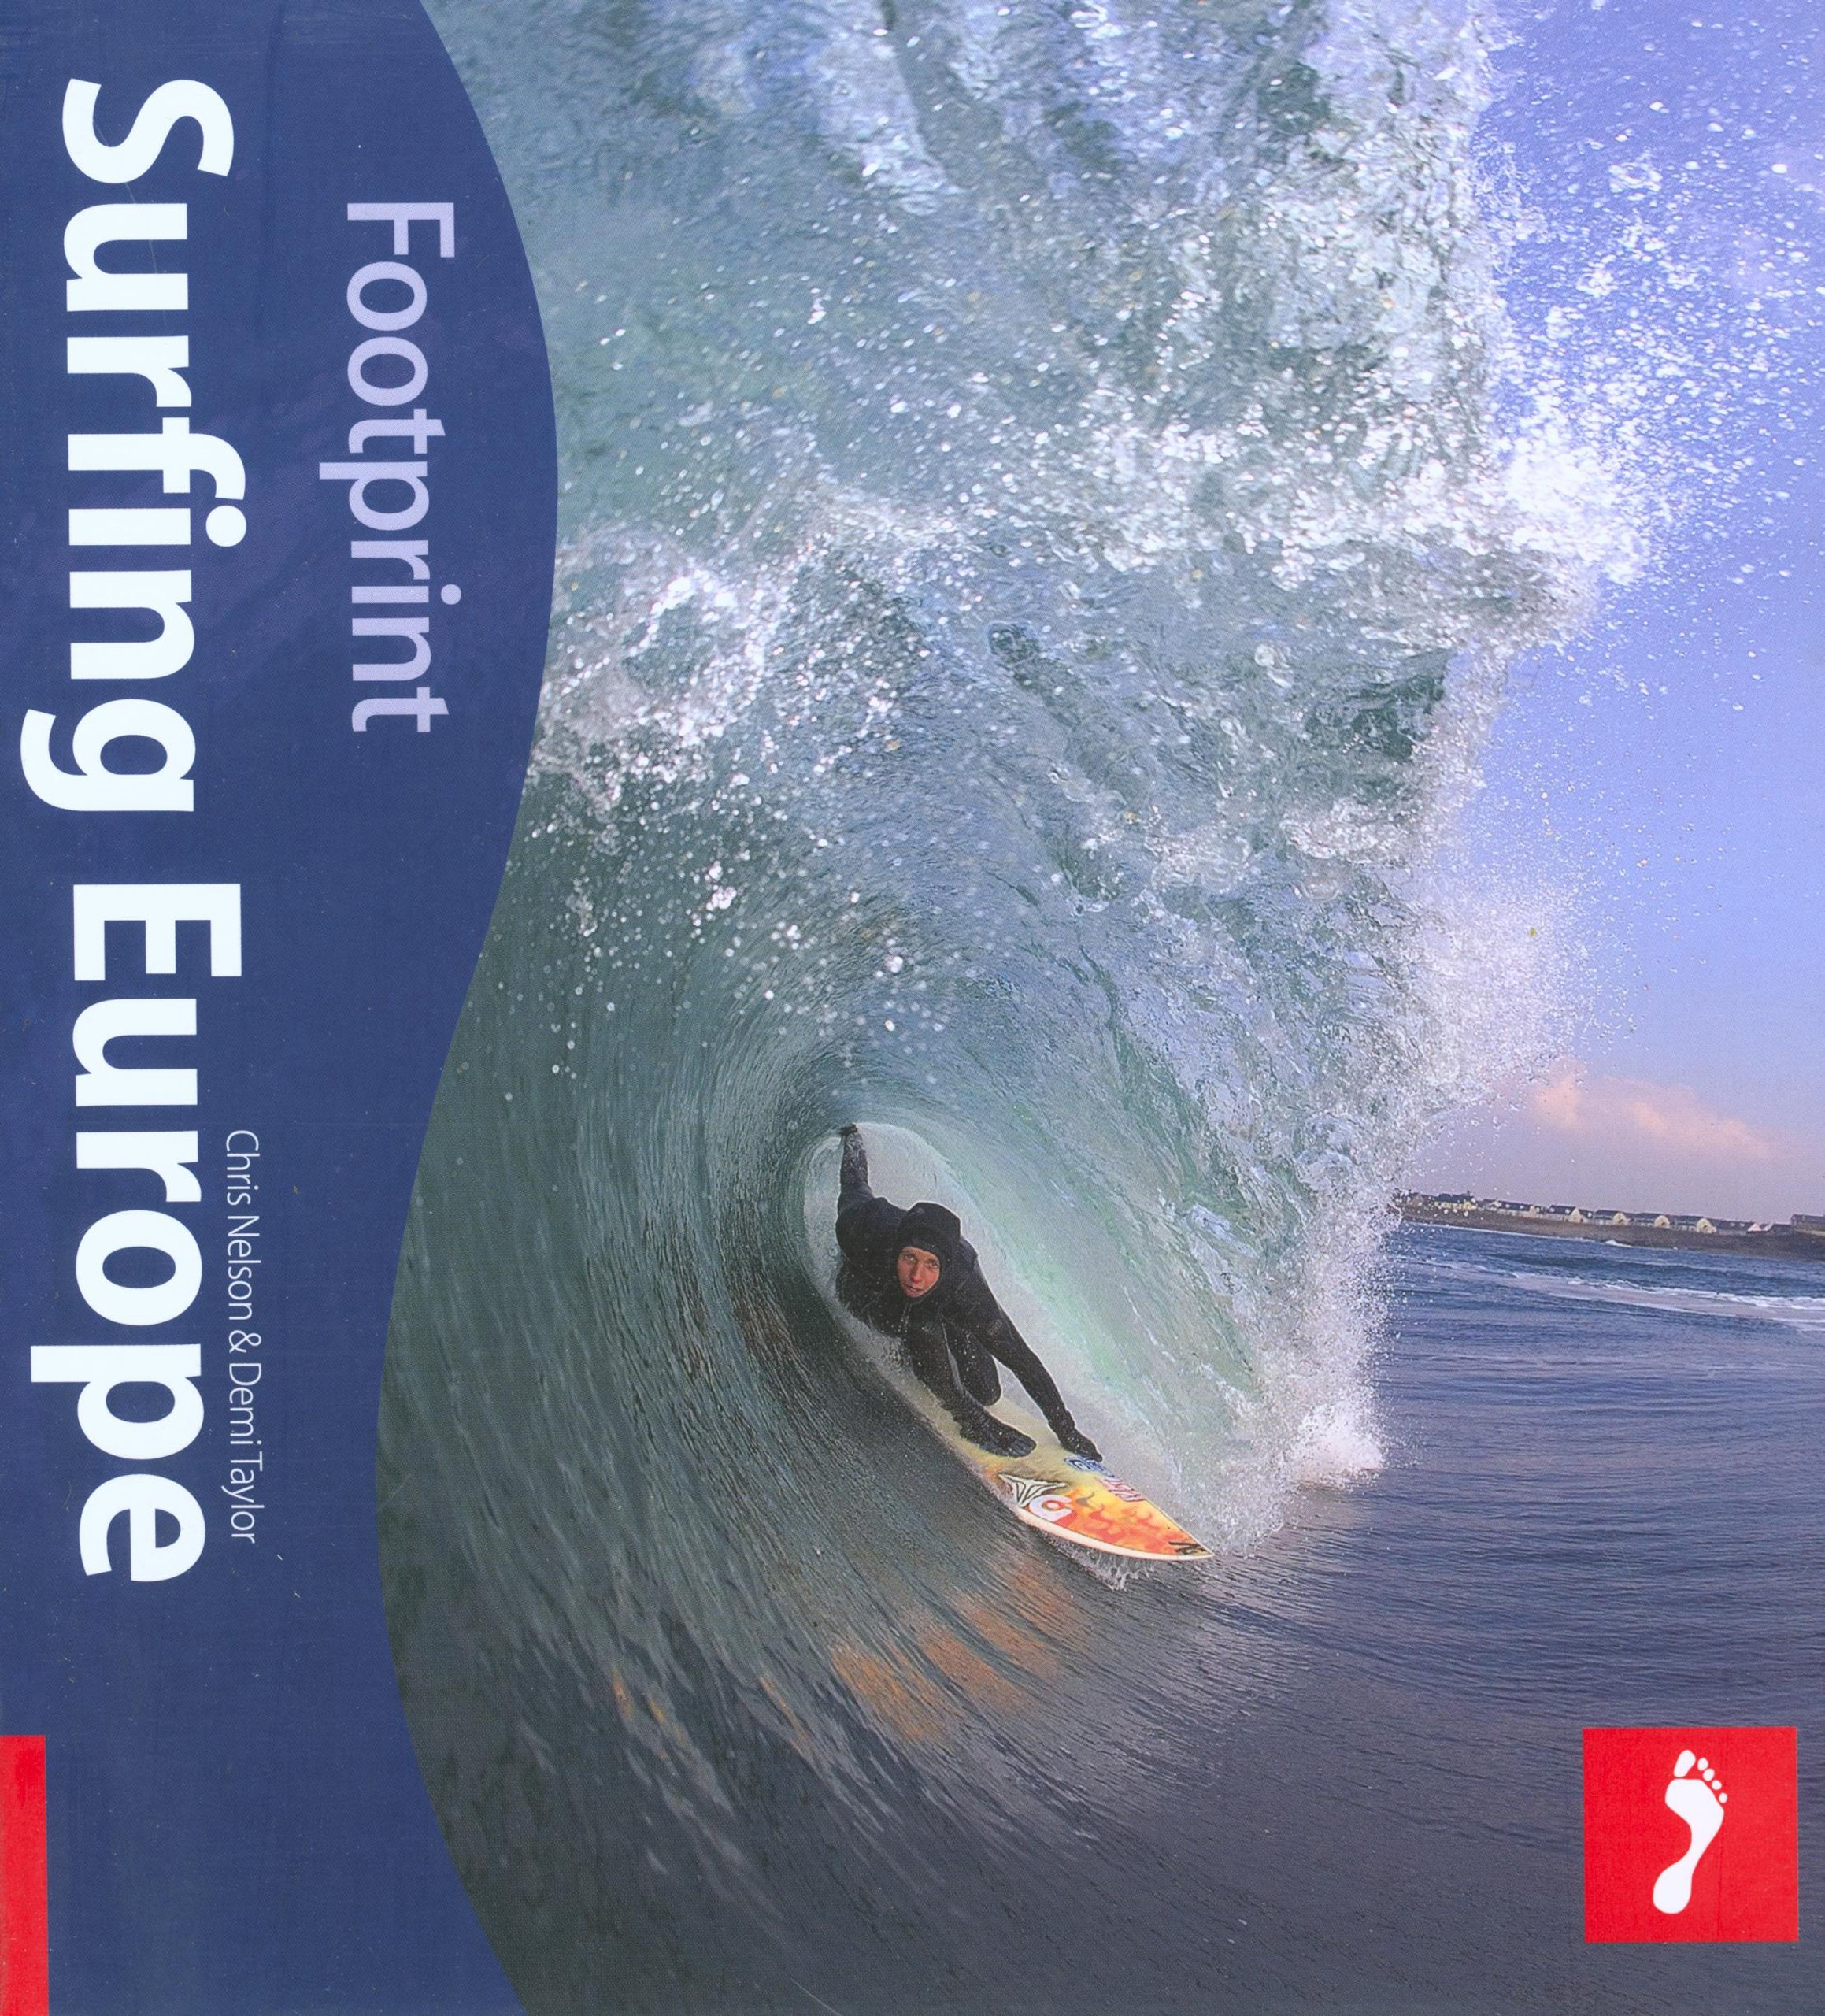 Surfing Europe Footprint Activity & Lifestyle Guide Idioma Inglés: Amazon.es: Nelson, Chris, Taylor, Demi: Libros en idiomas extranjeros